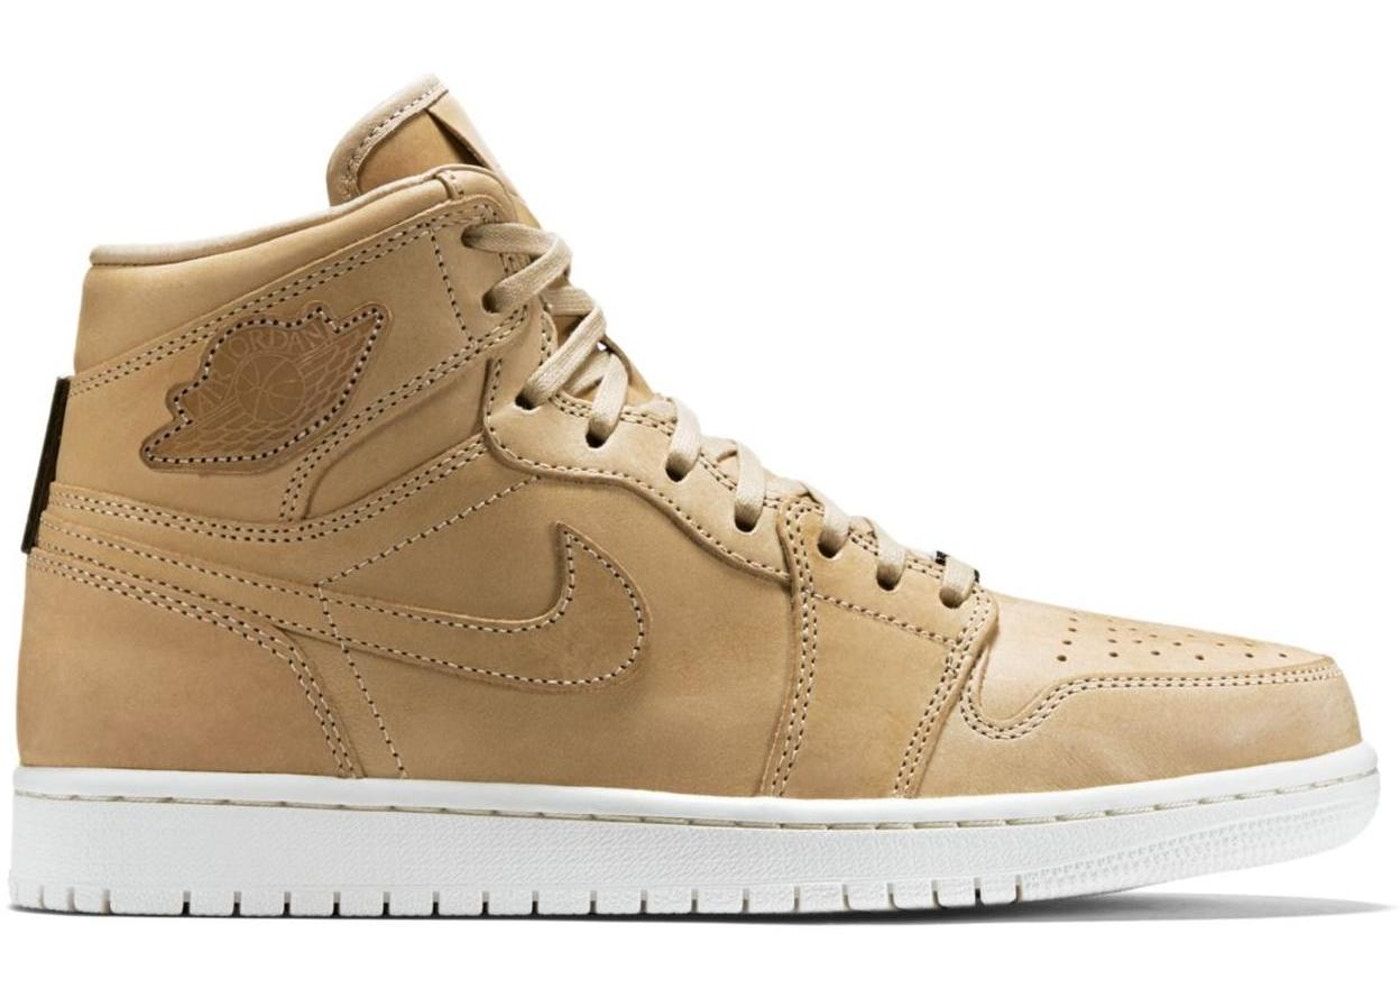 2503b2fb905 Jordan 1 Retro Pinnacle Vachetta Tan - 705075-201